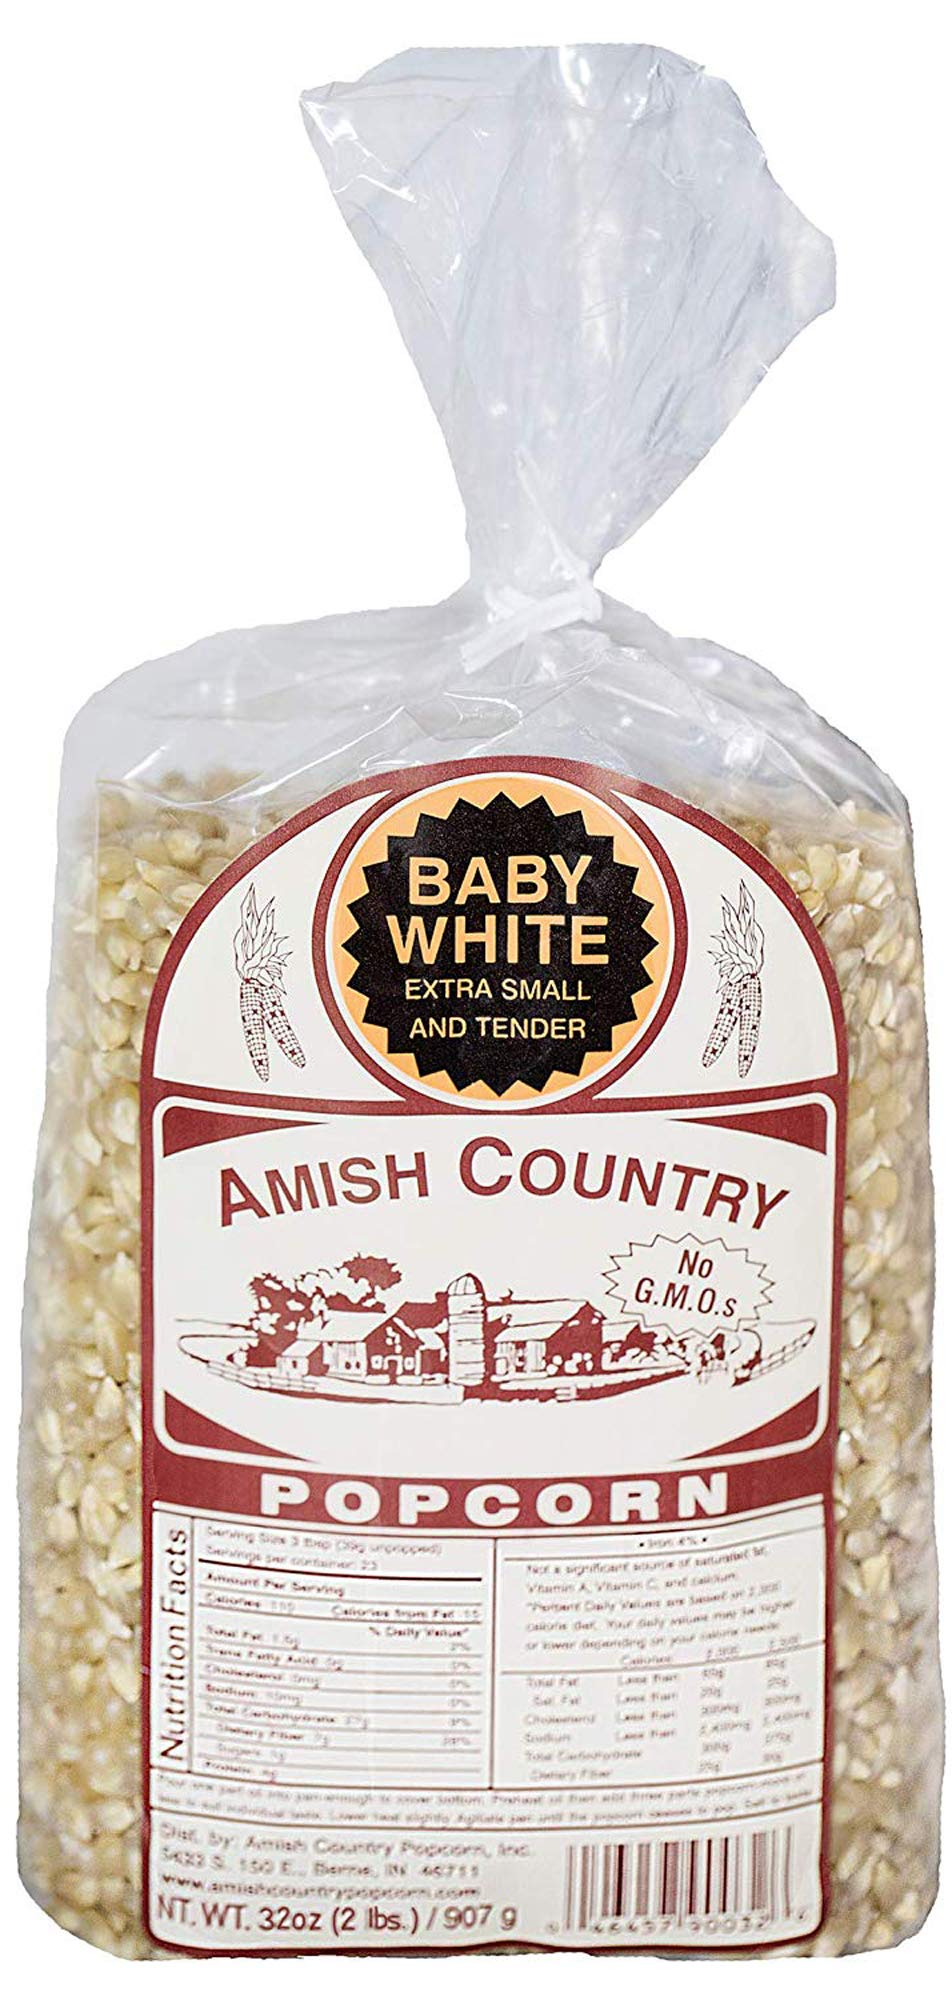 Amish Country Popcorn - Baby White Extra Small and Tender - Old Fashioned, Non GMO, Gluten Free, Microwaveable, Stovetop and Air Popper Friendly (2lb Bag with Recipe Guide) by Amish Country Popcorn